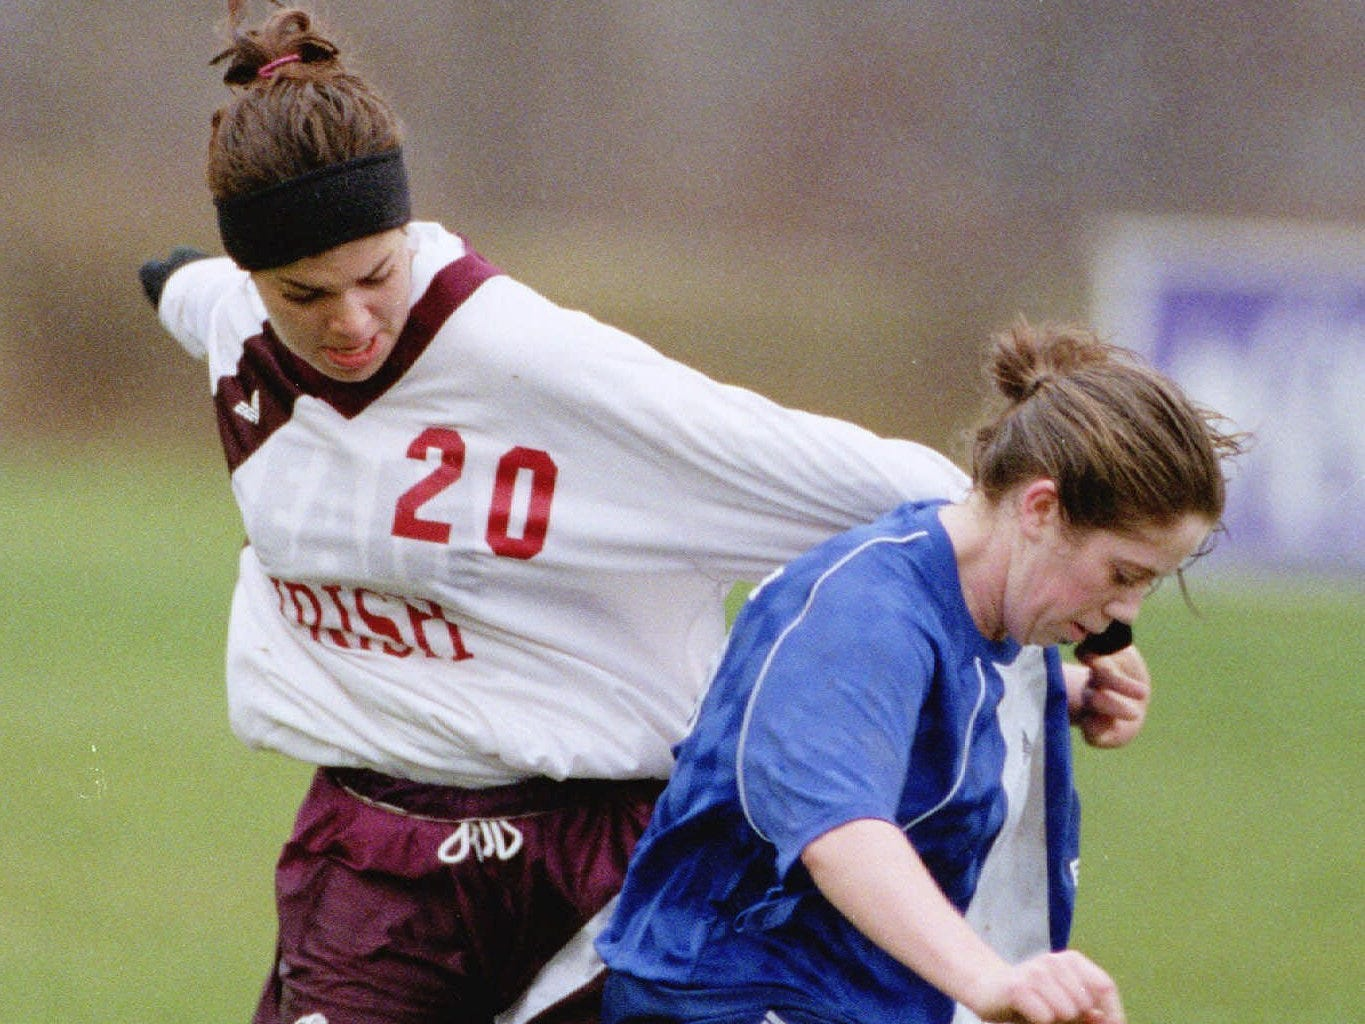 Aquinas's Stephanie Happ, left, and Pearl River's Krystyn Knieriem battle for the ball during the state Class B girls soccer semifinals in Oneonta on Nov. 20, 1998.